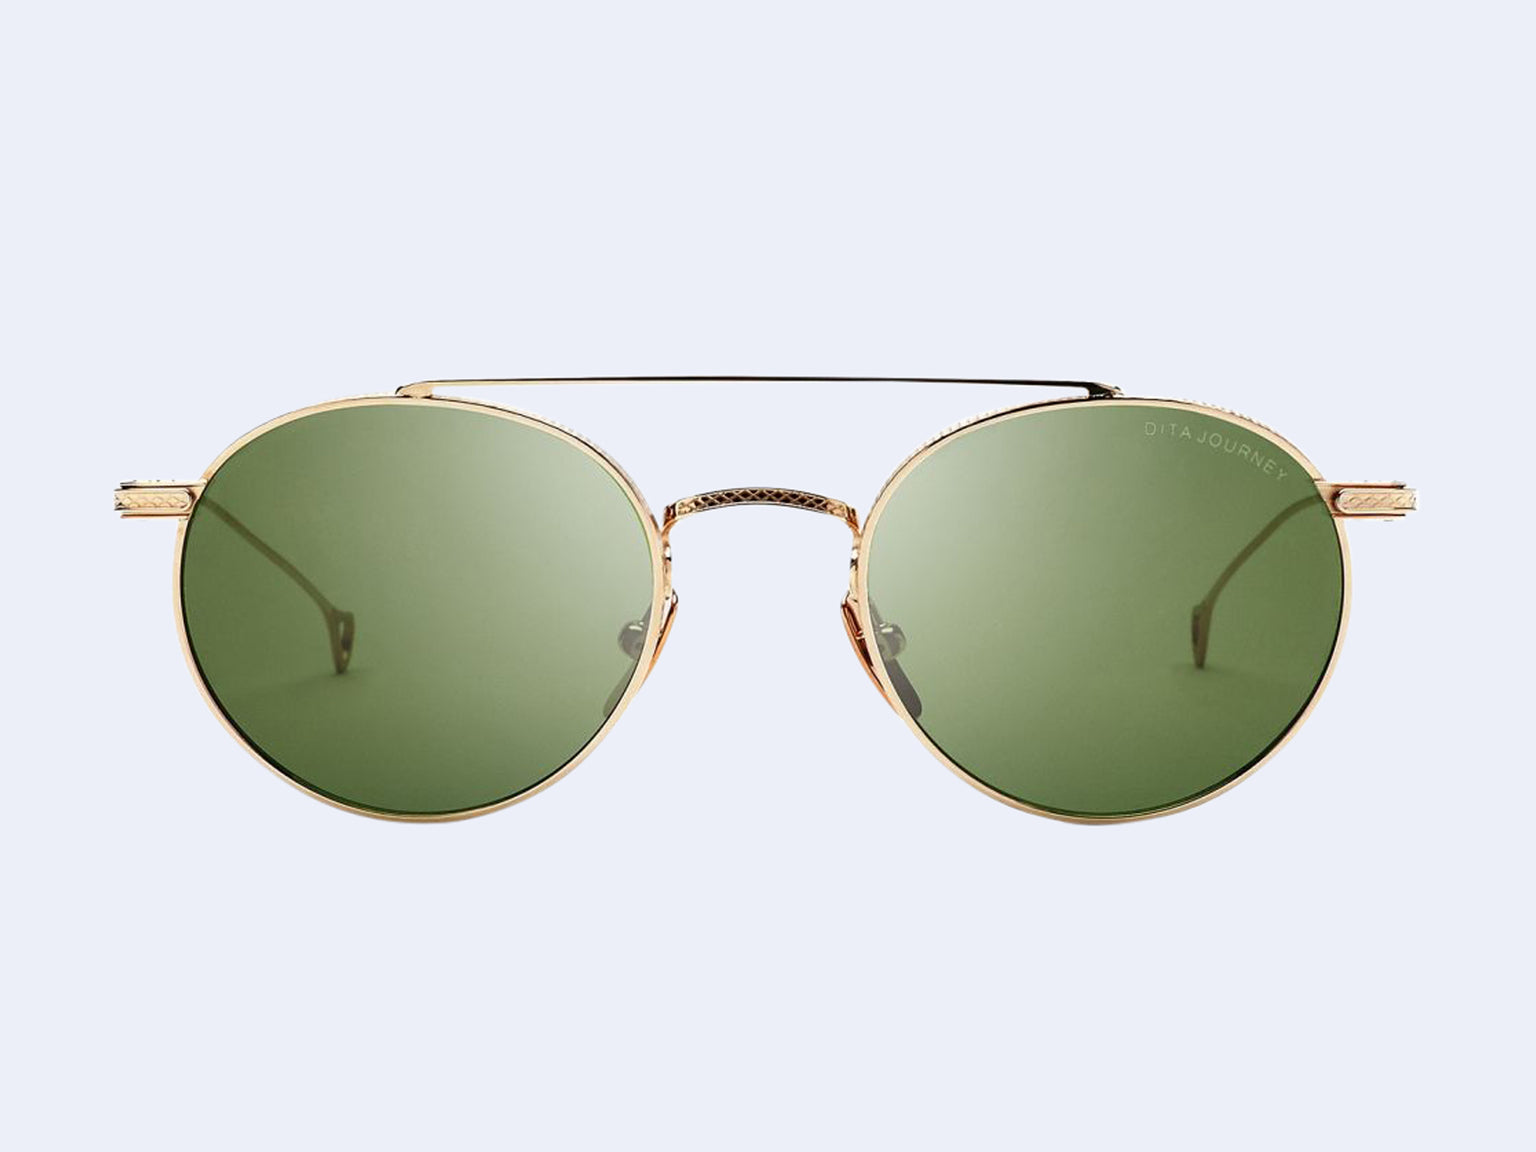 DITA Journey Sun (White-Gold with Vintage-Green Lens)